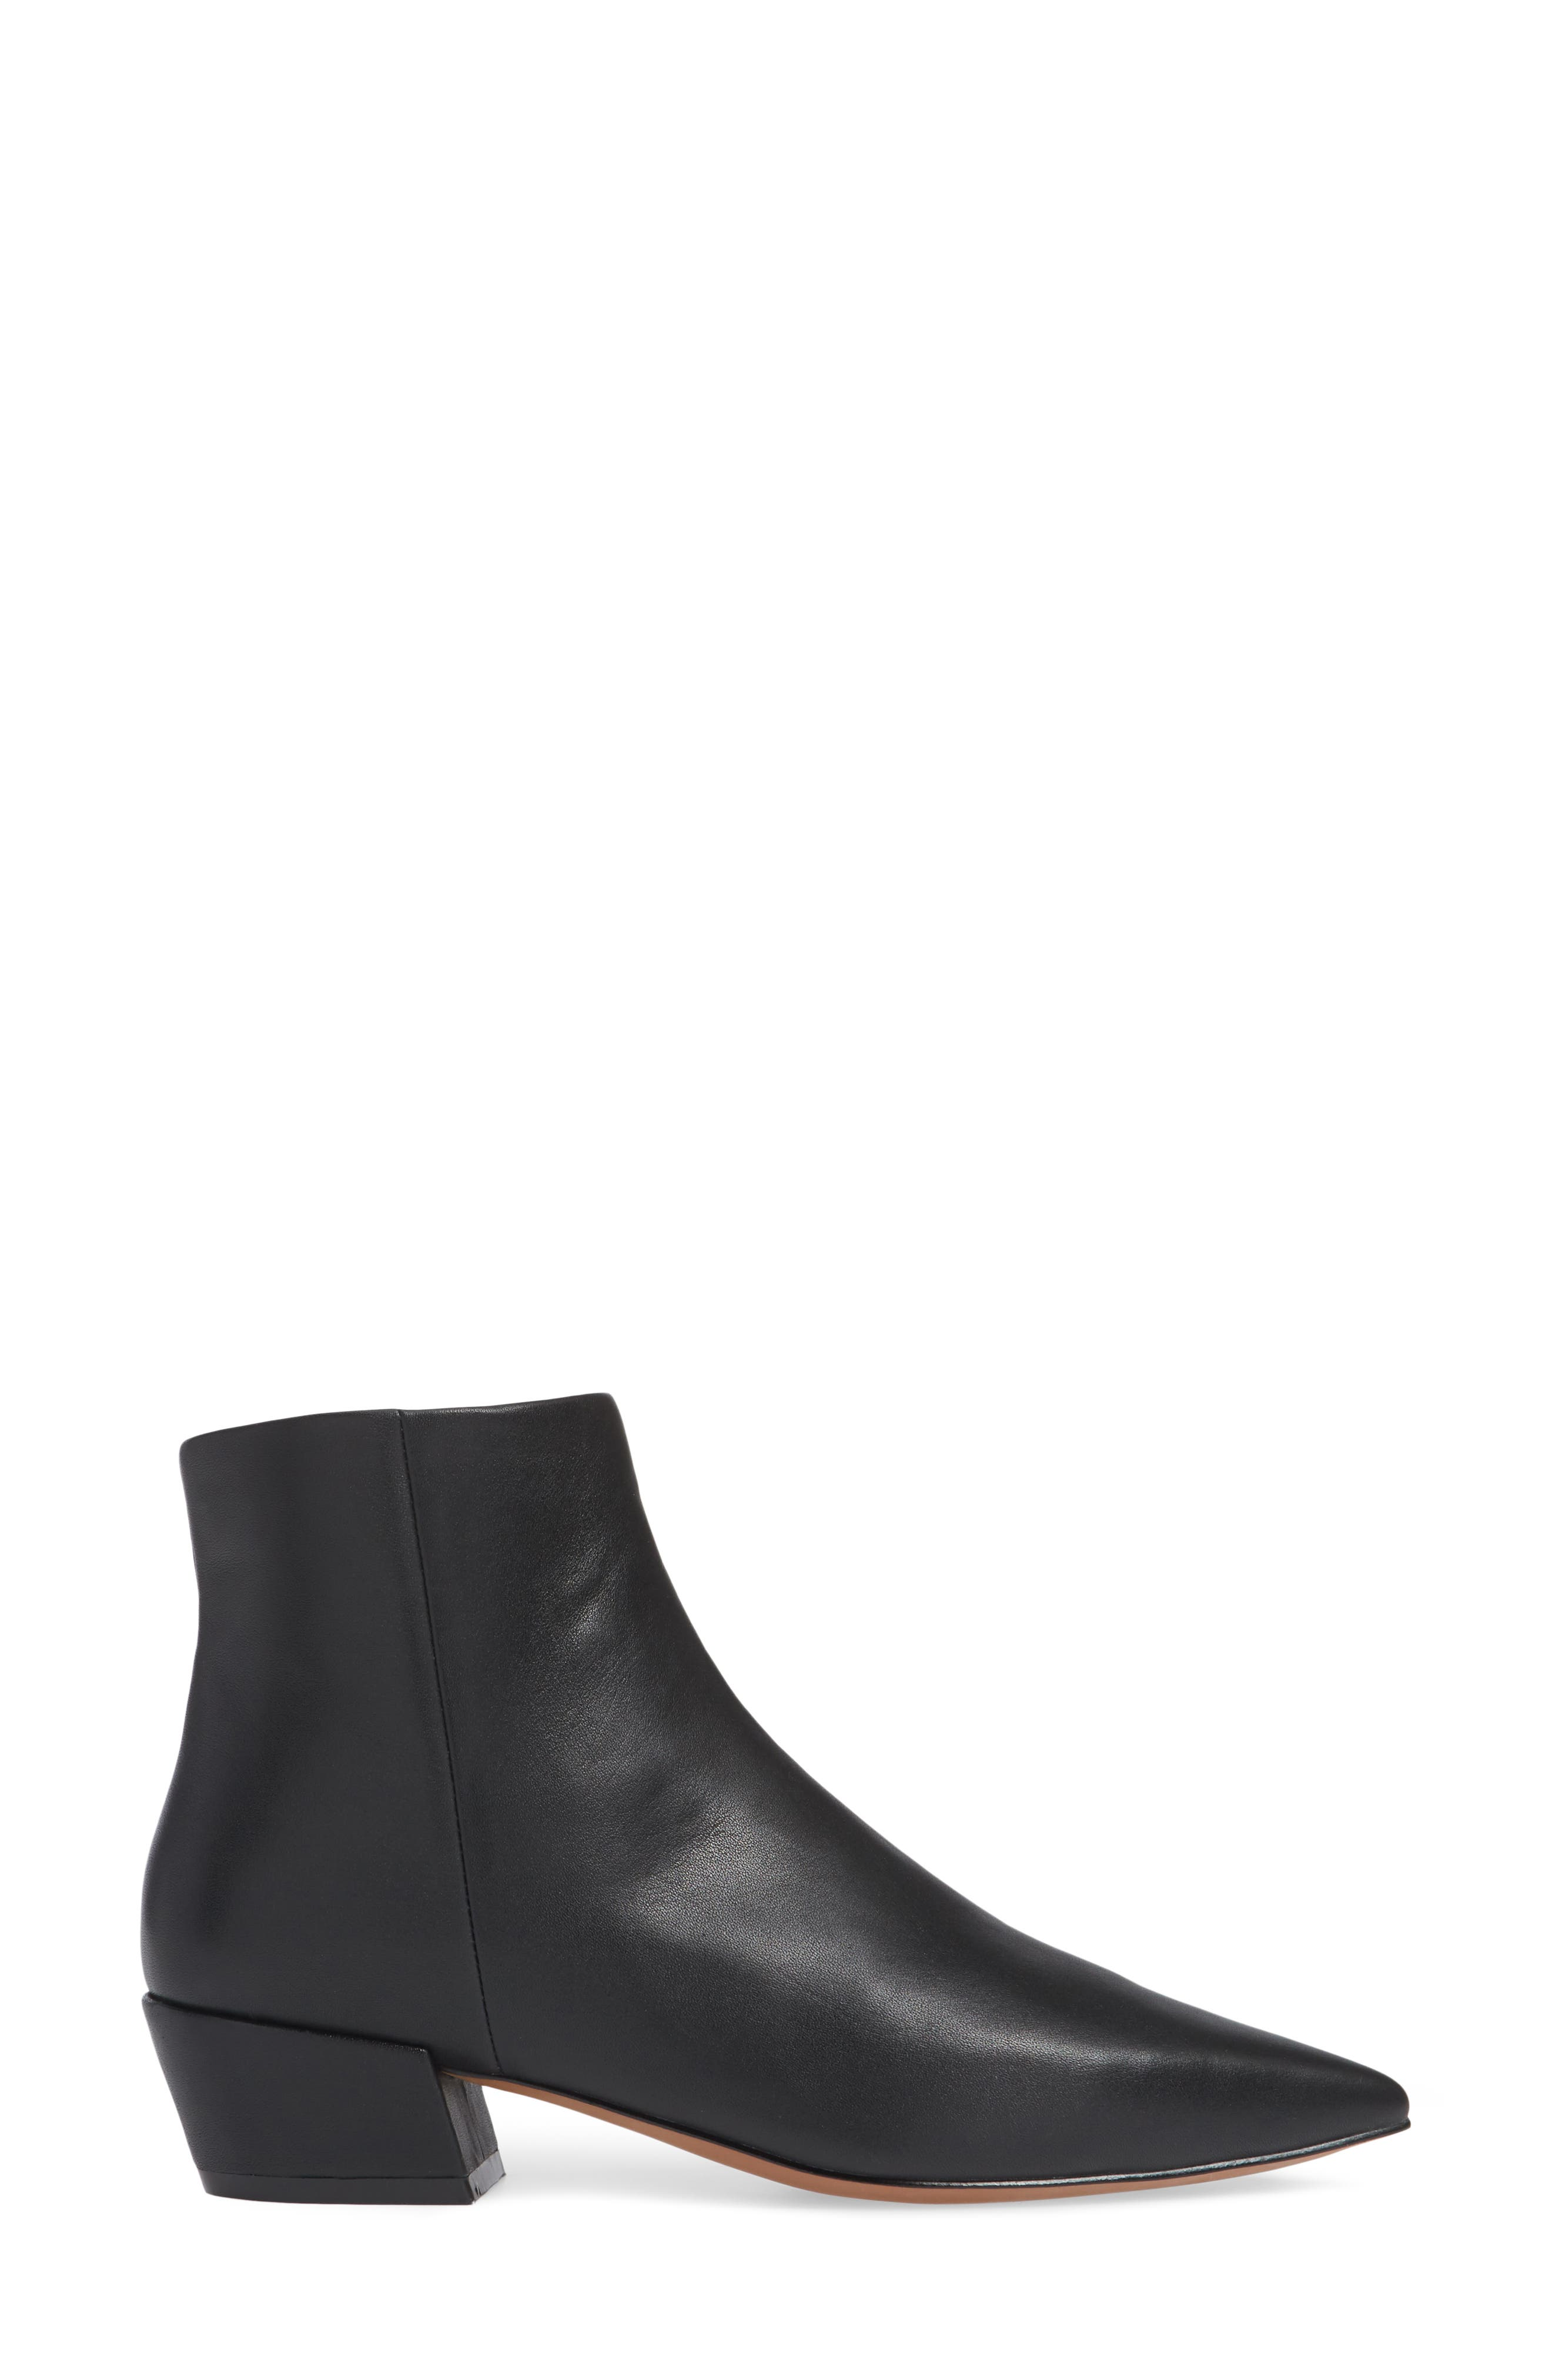 LINEA PAOLO, Robyn Waterproof Boot, Alternate thumbnail 3, color, BLACK LEATHER